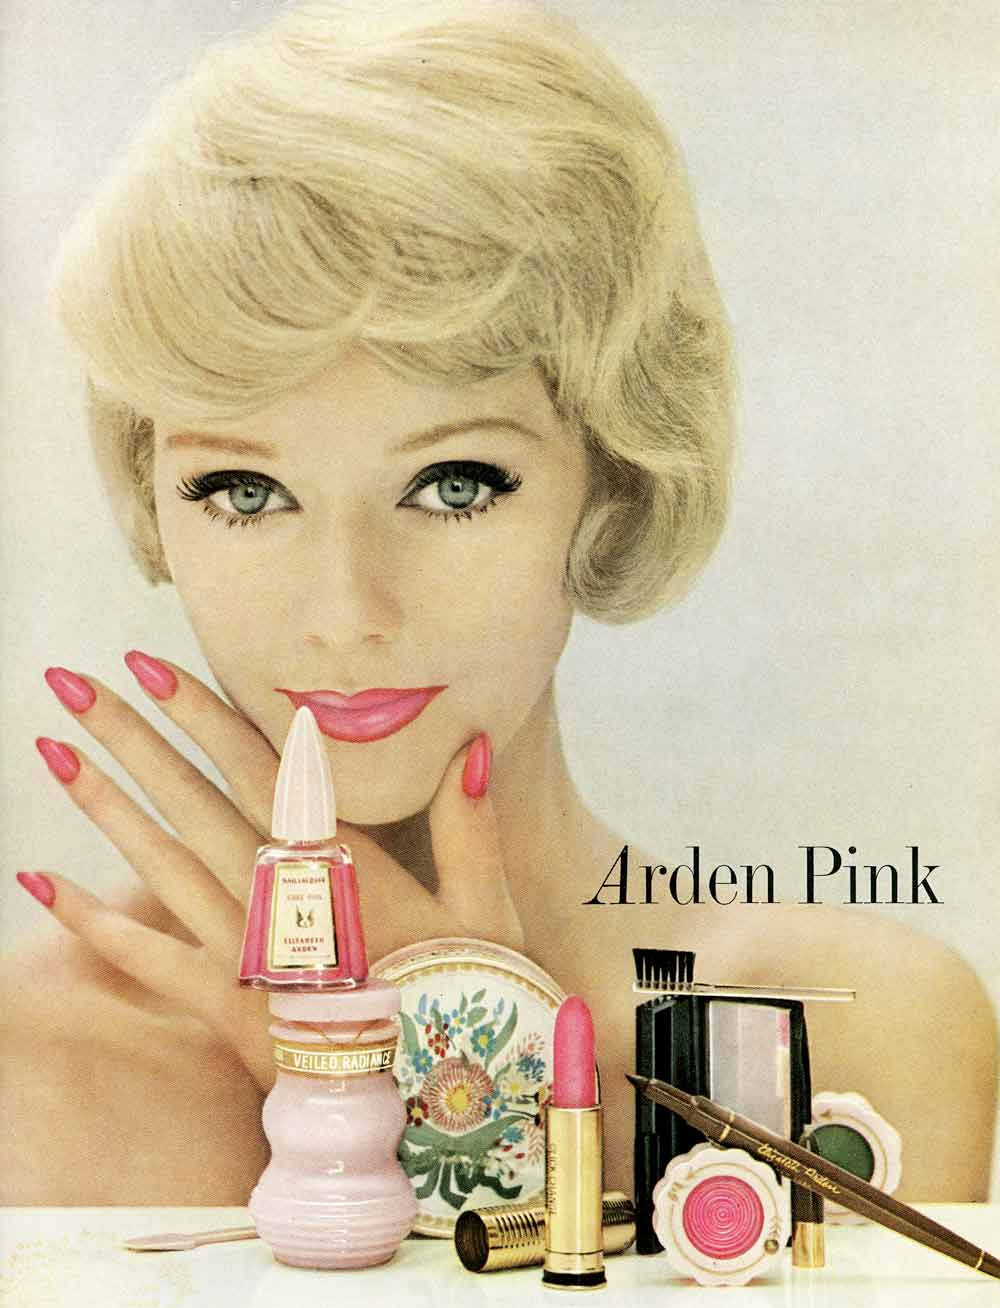 Hair Beauty Adverts From The 1960s